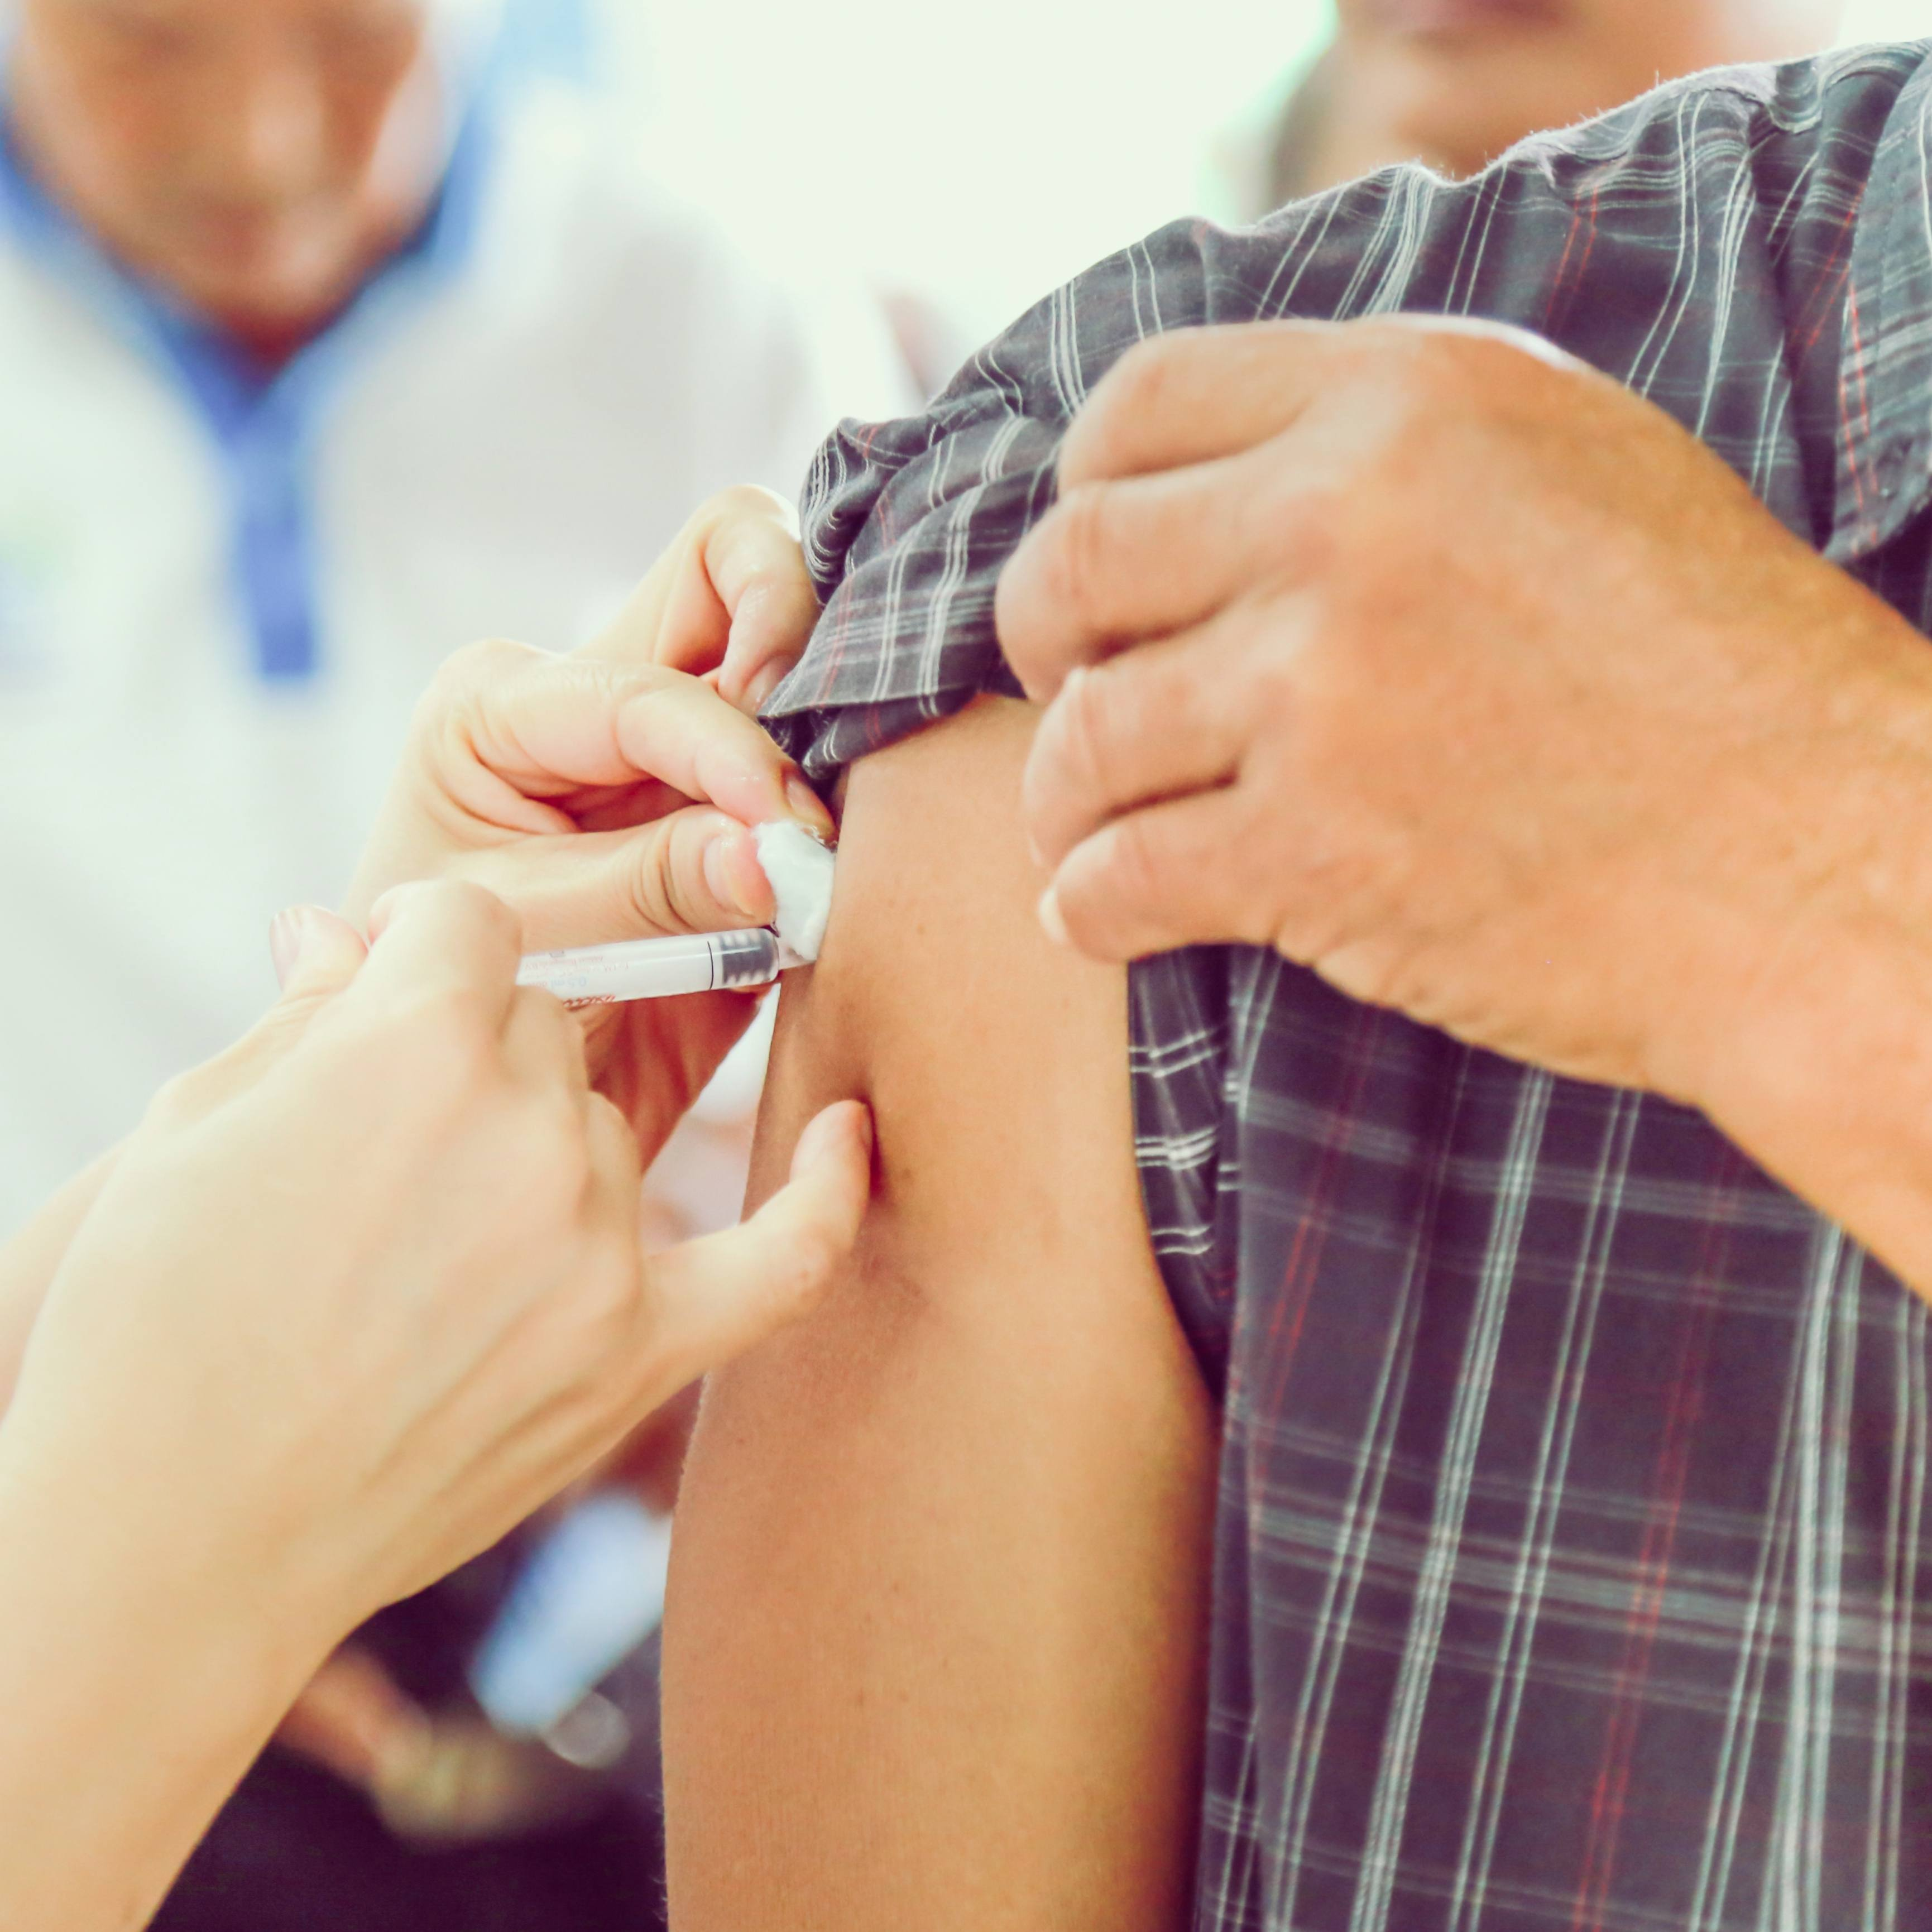 a person getting vaccinated by a healthcare person giving a flu shot